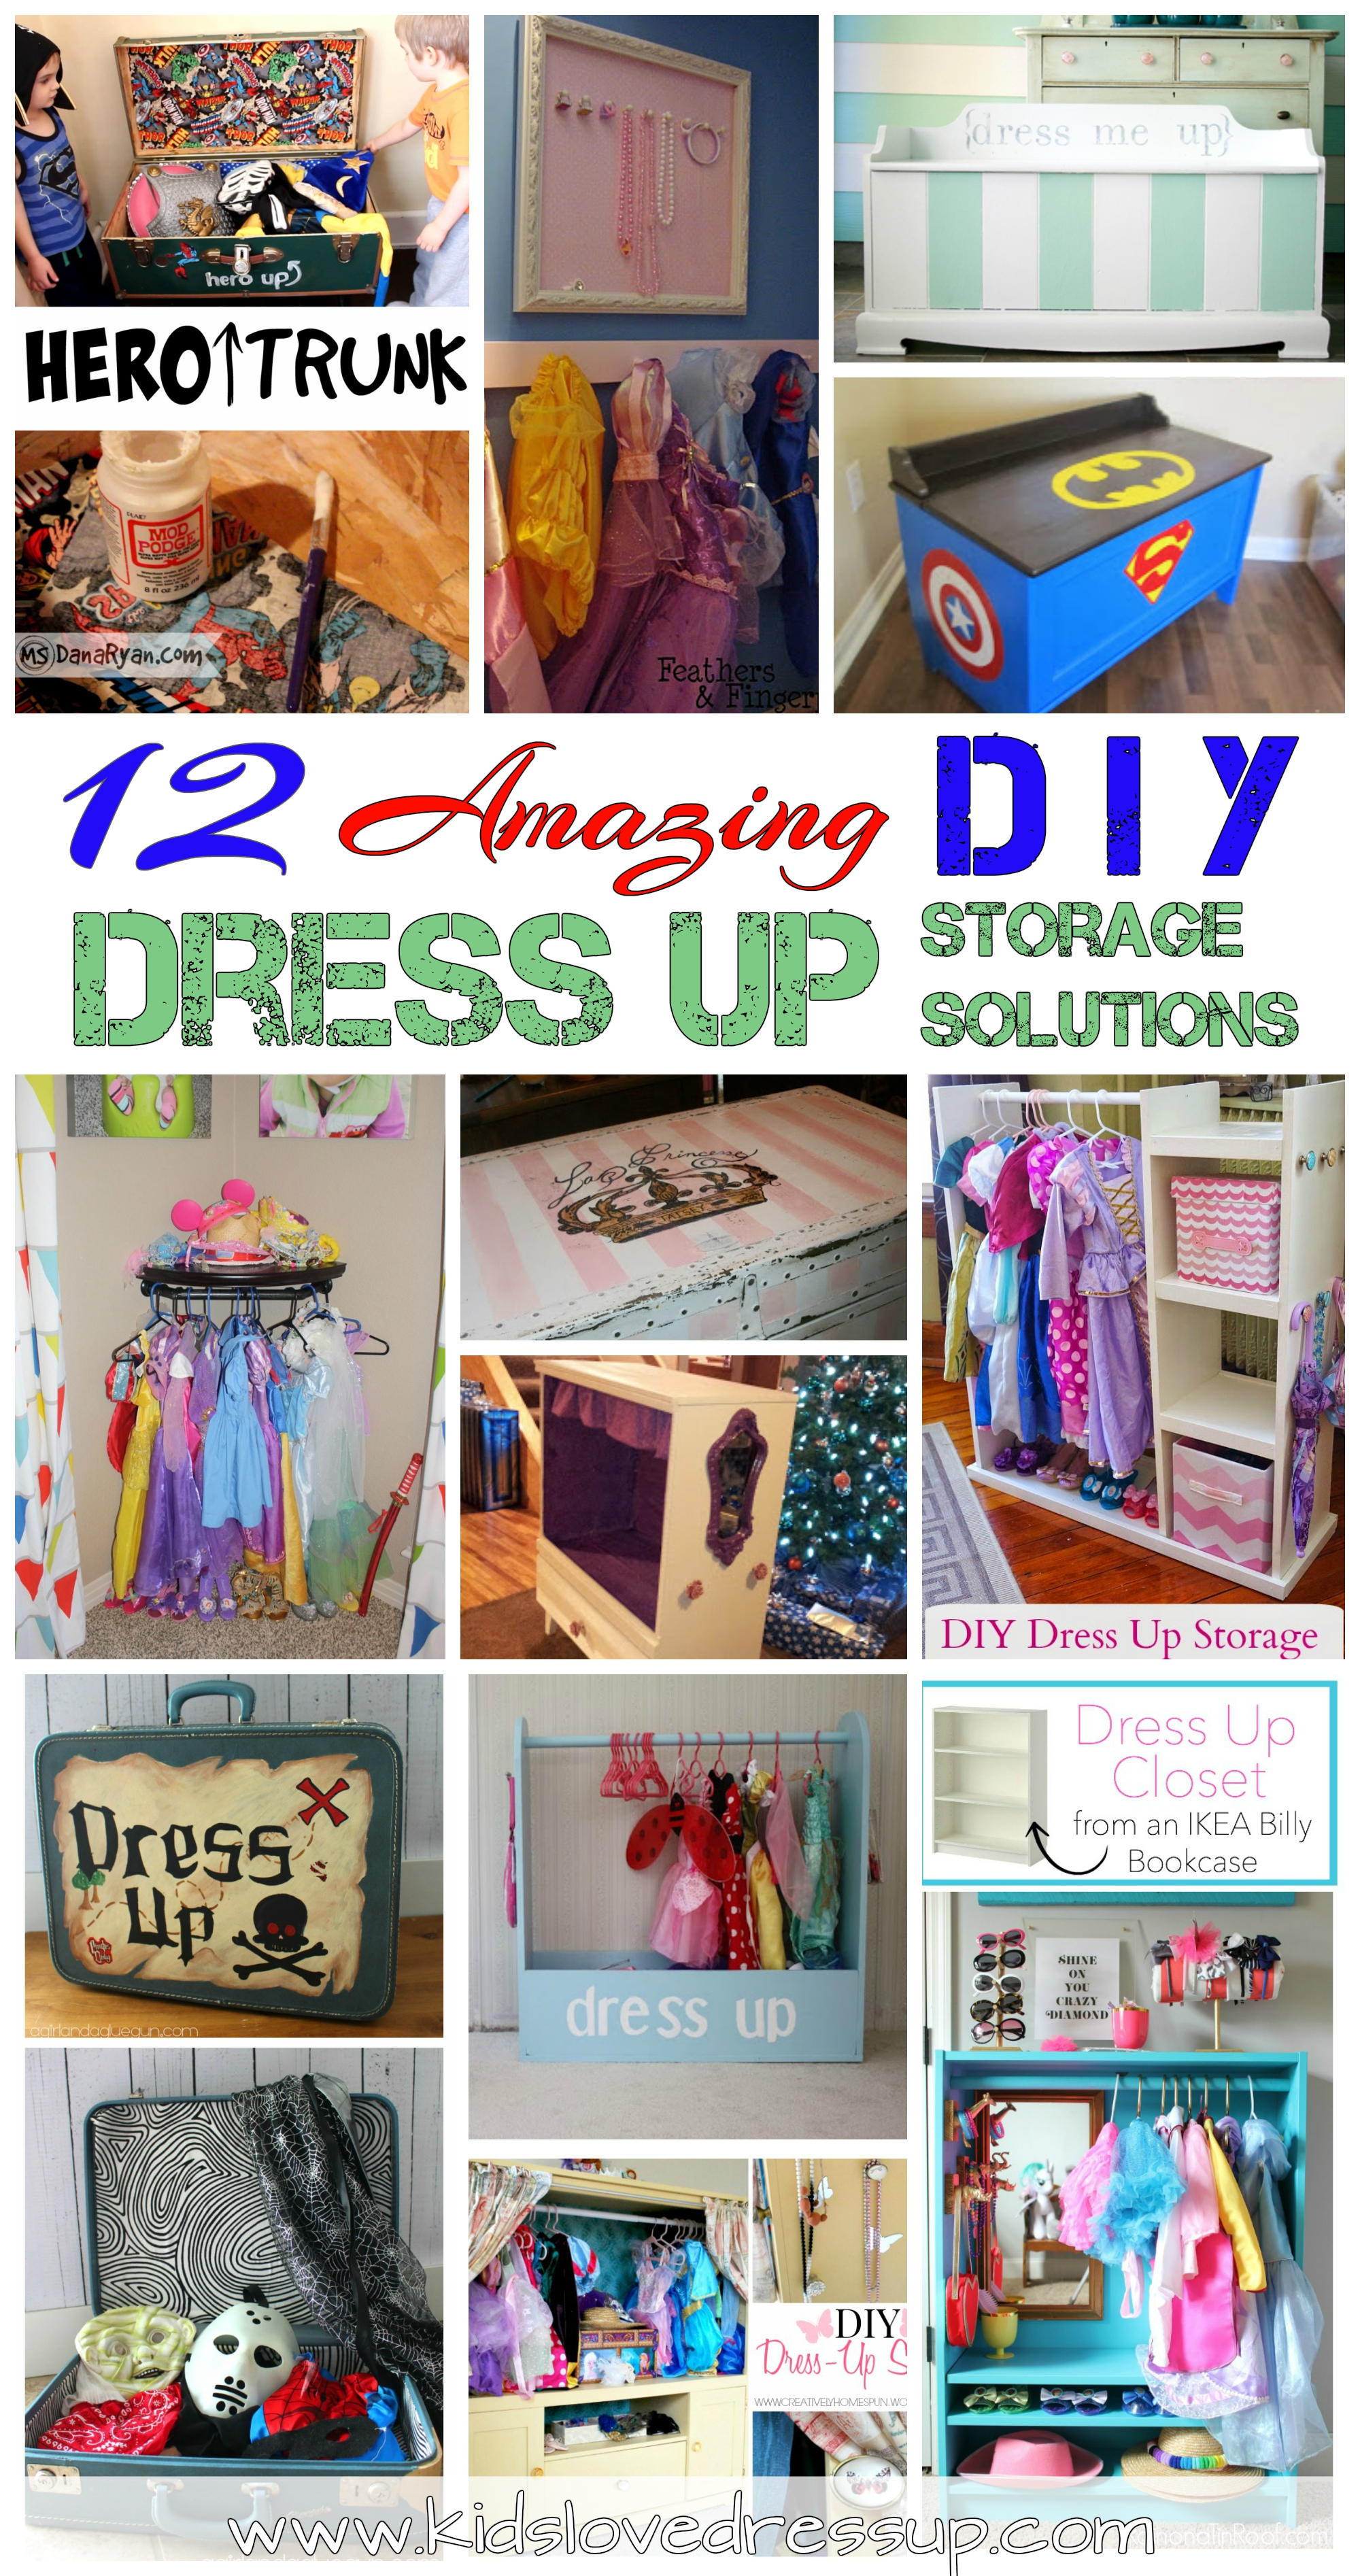 12 Amazing Dress Up Storage Solutions! Blog post at www.kidslovedressup.com